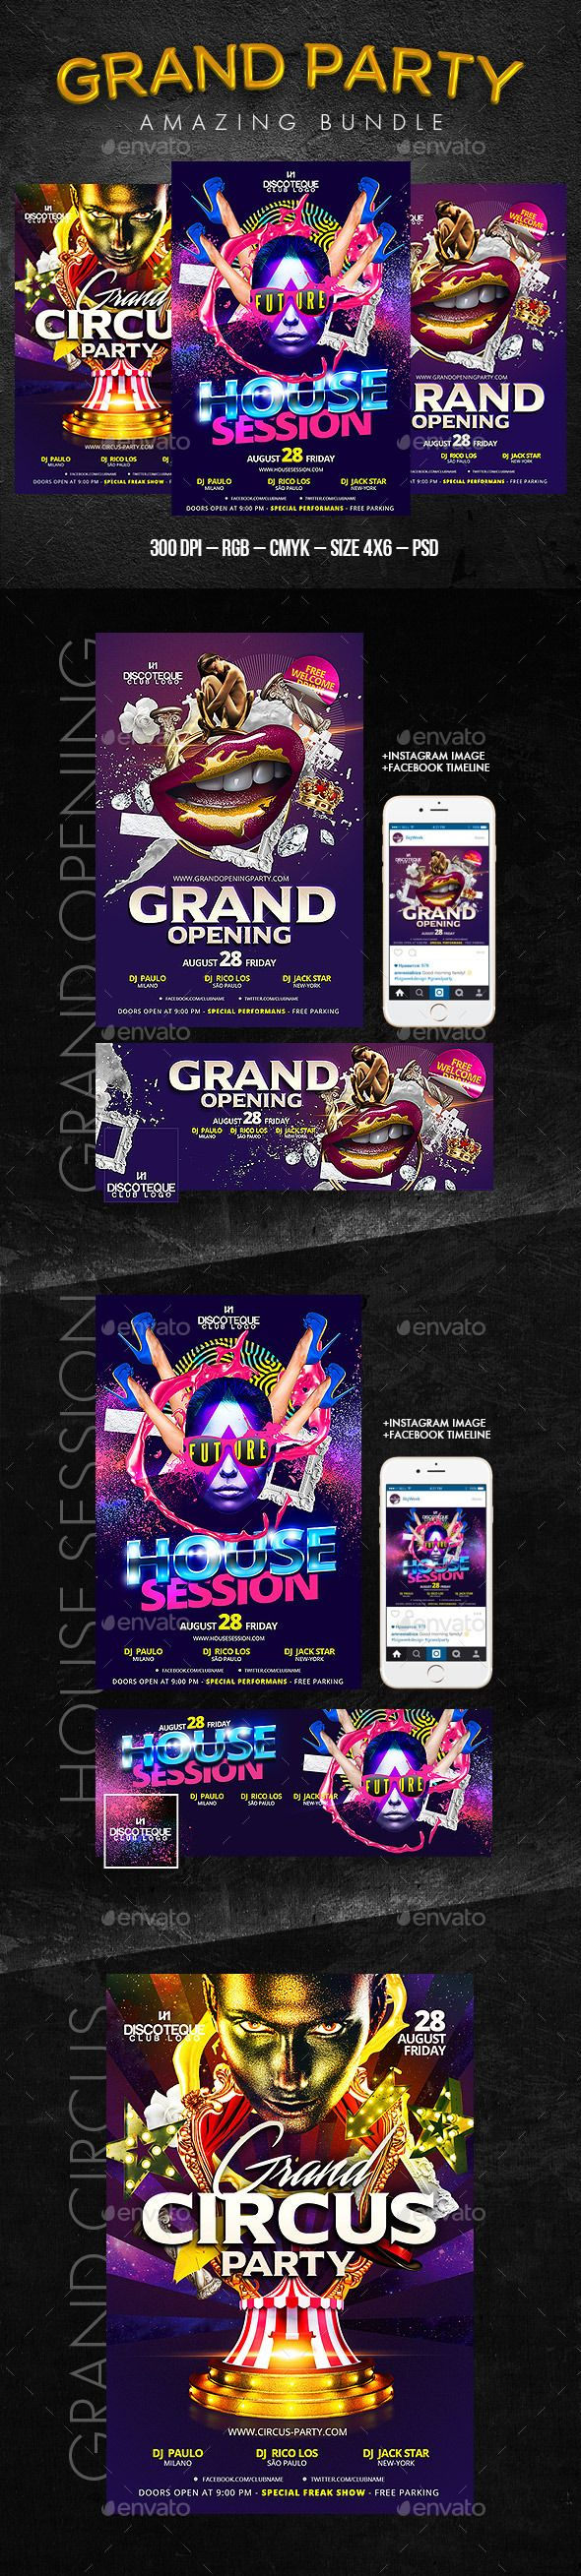 best images about party flyers ideas dj party club party